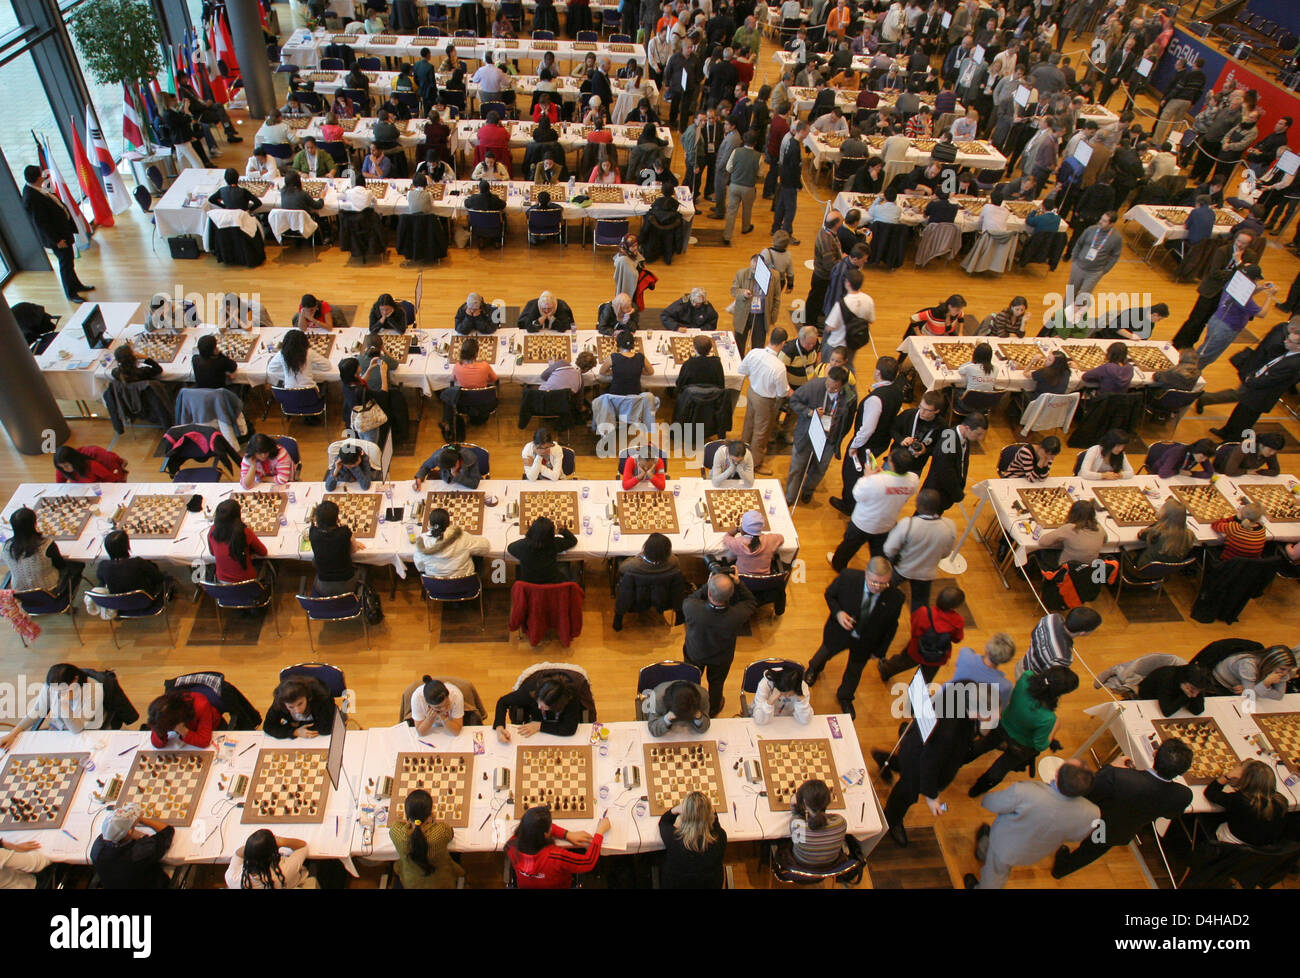 Chess players are pictured during the sixth round of the 38th ?Chess Olympiad? in Dresden, Germany, 19 November - Stock Image